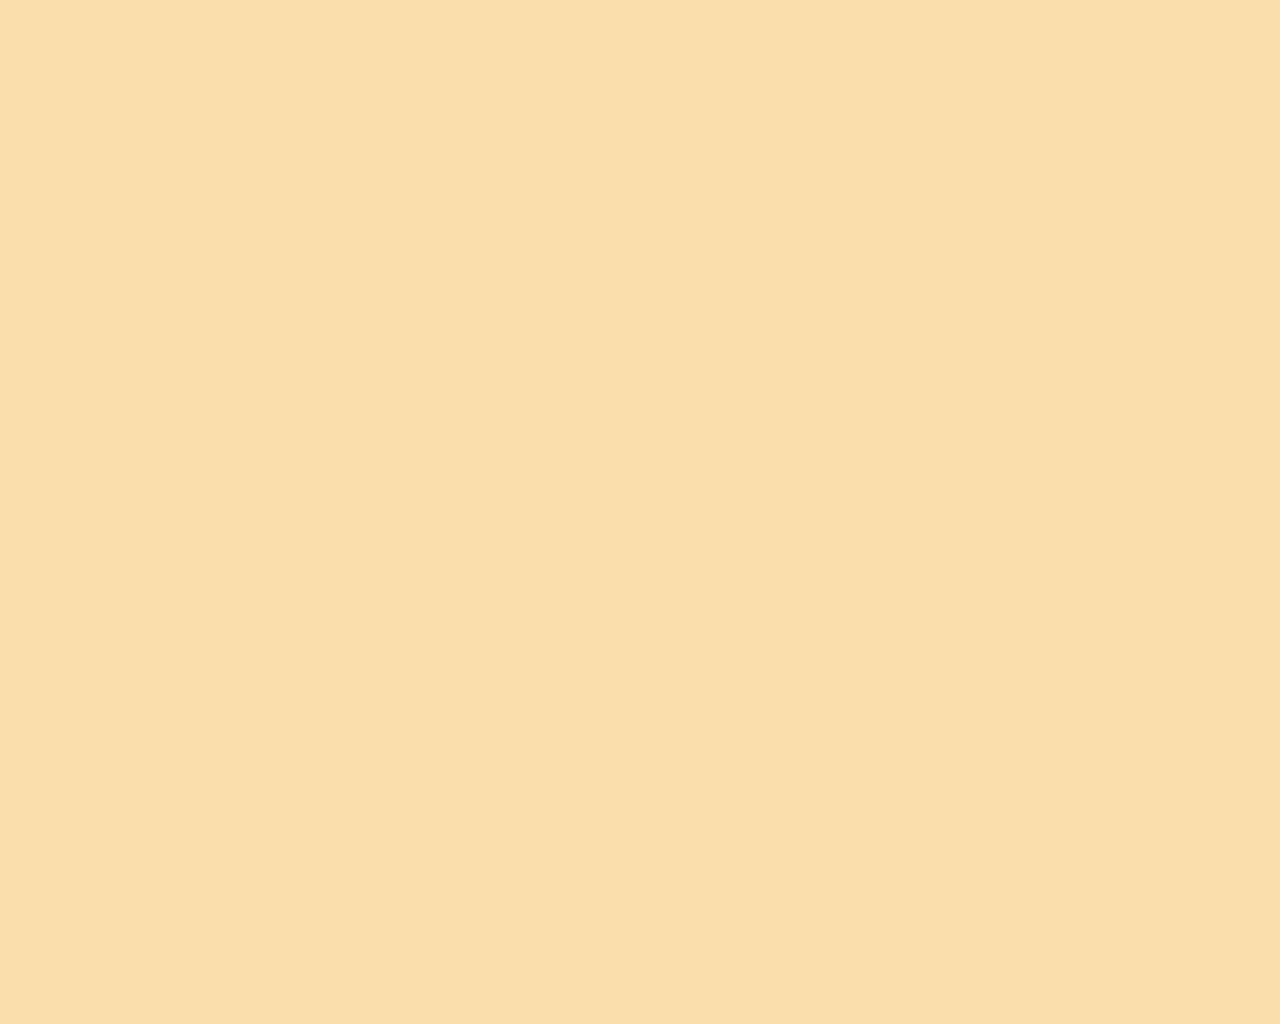 1280x1024 Peach-yellow Solid Color Background